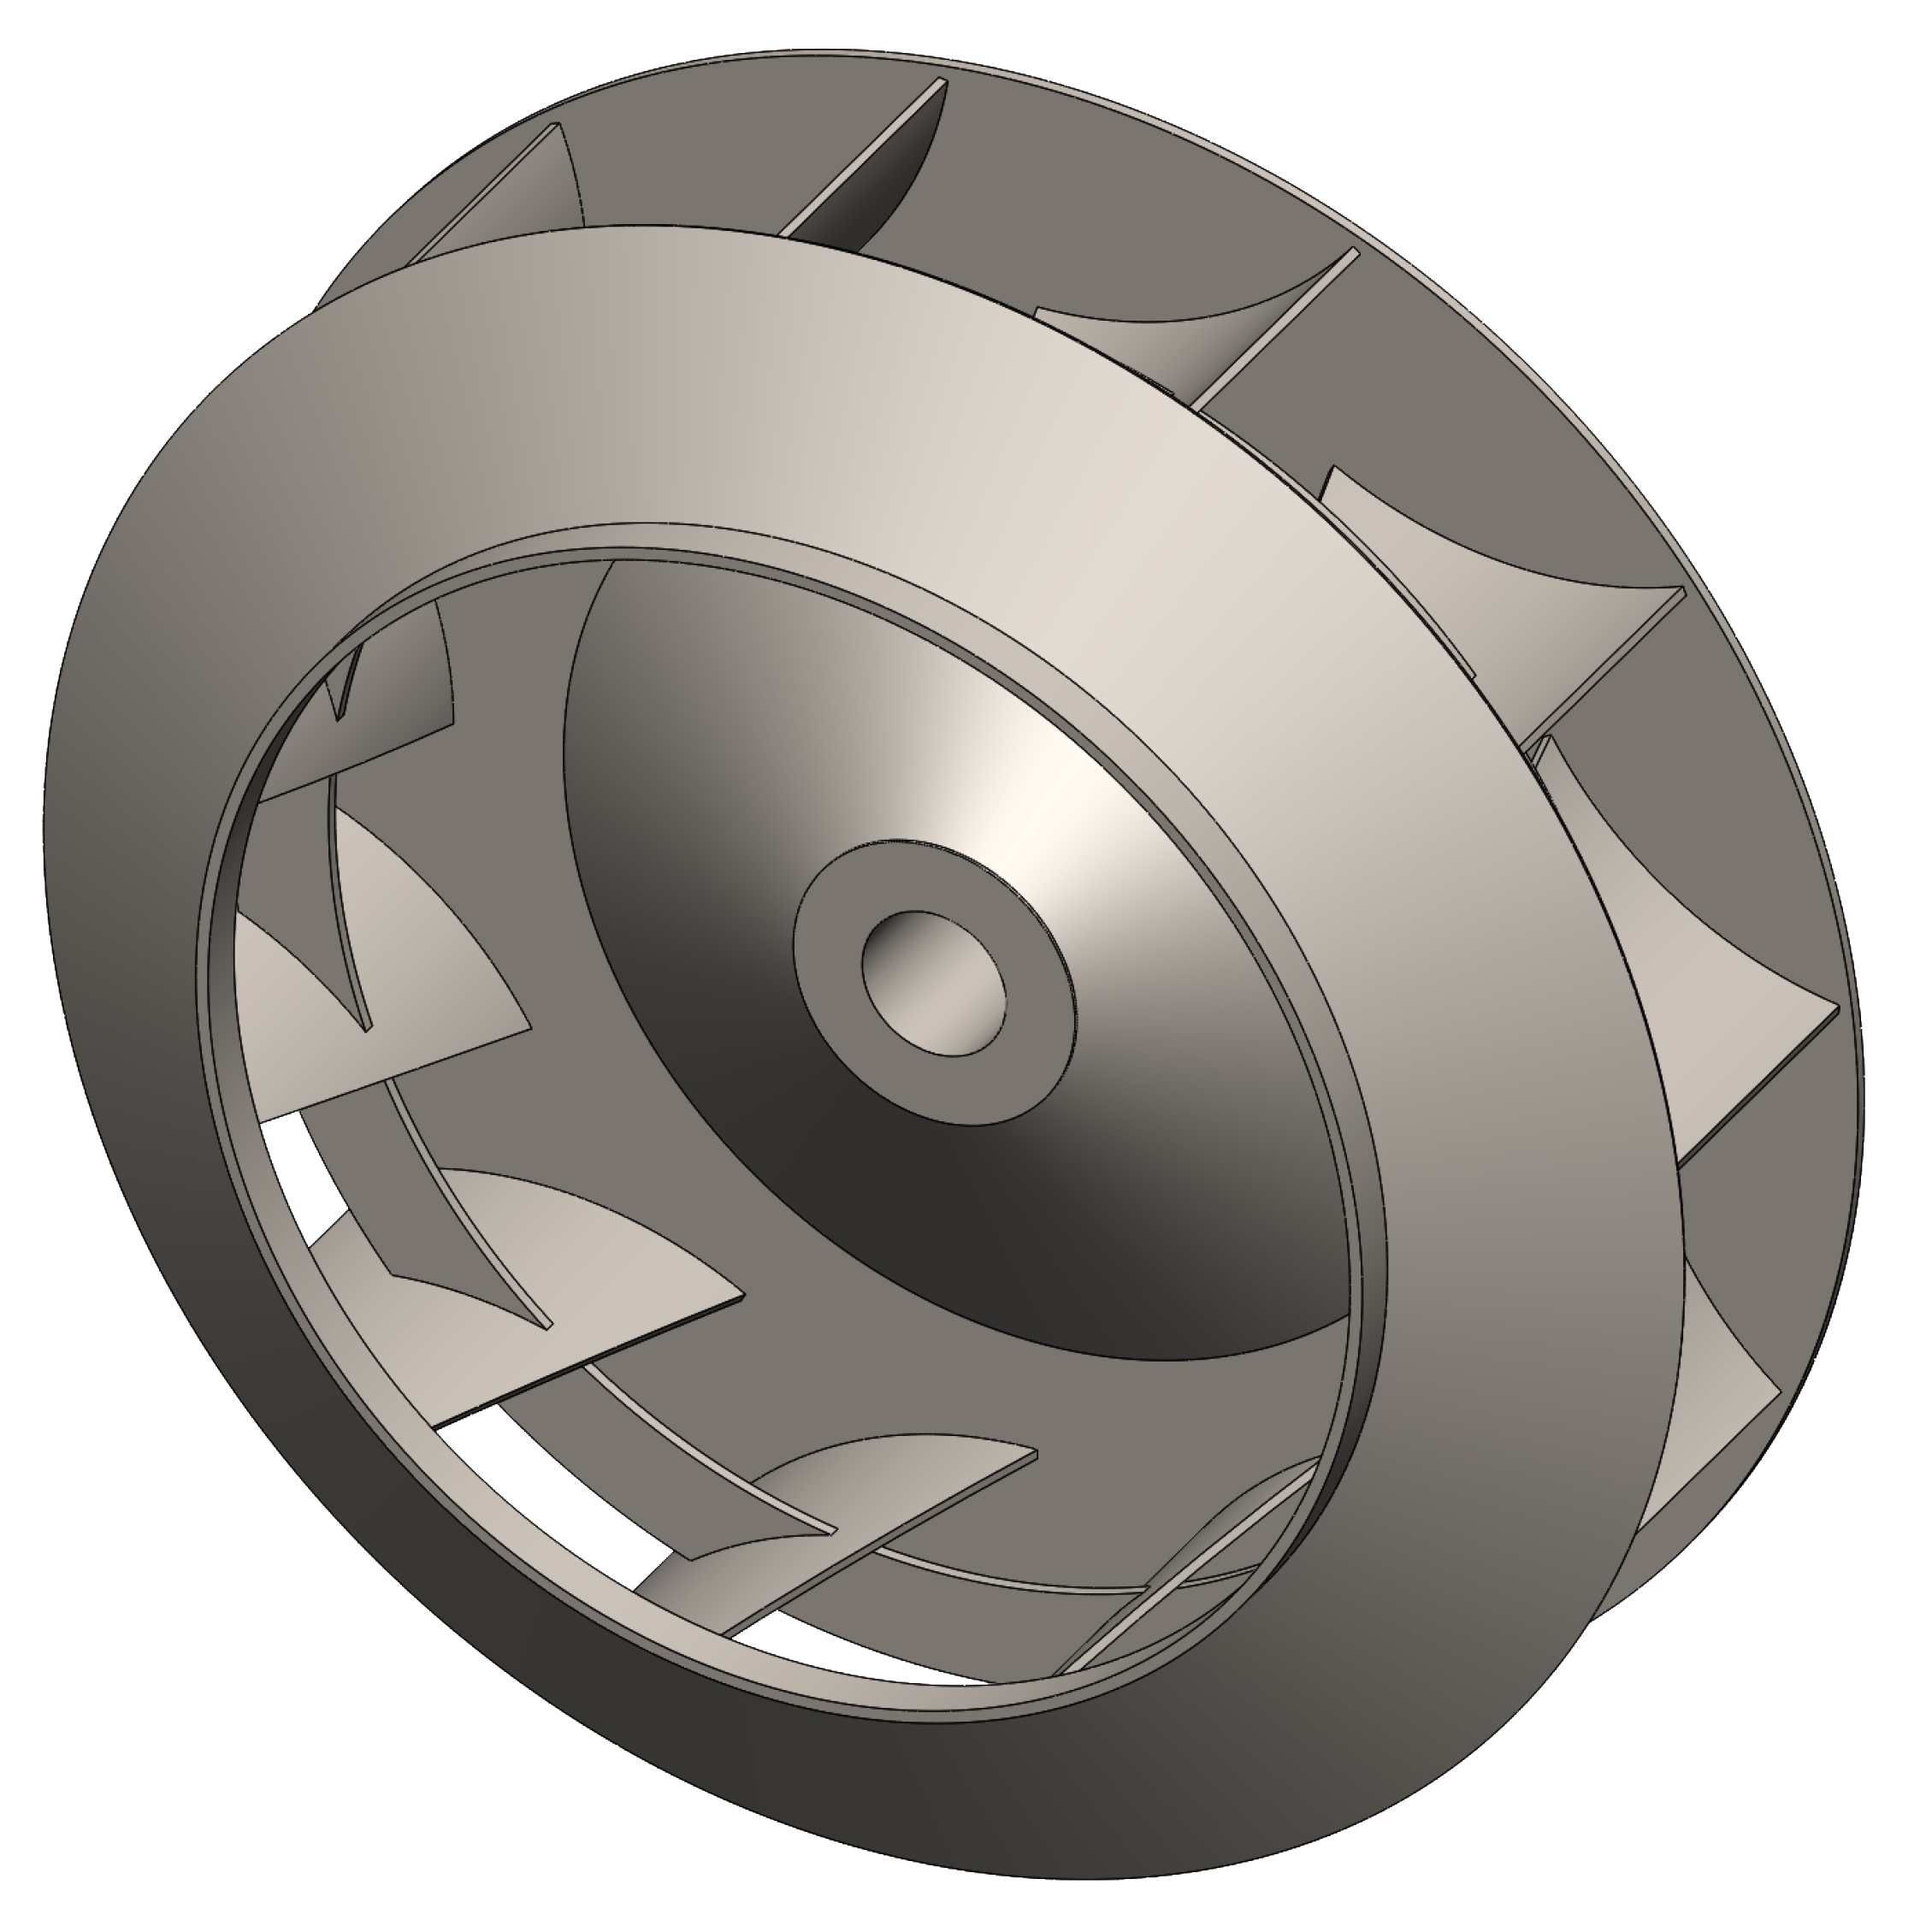 Industrial Blower Wheels : Radial tipped fan airpro blower company